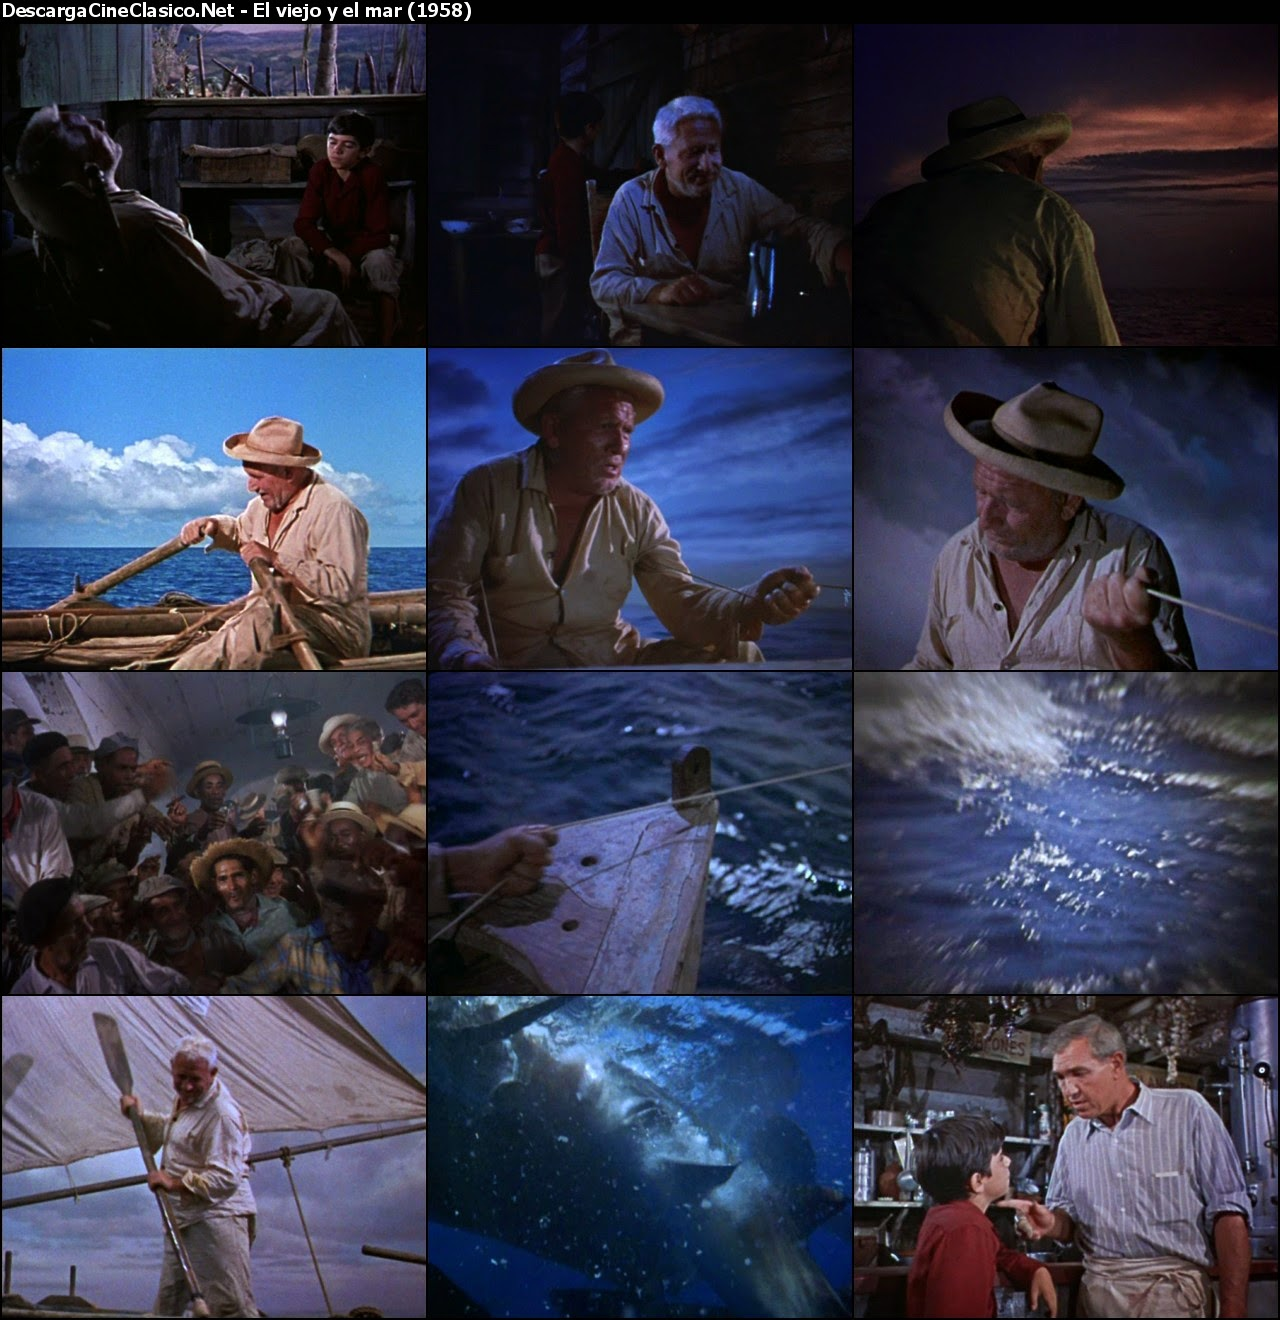 El viejo y el mar (1958 - The Old Man and the Sea)